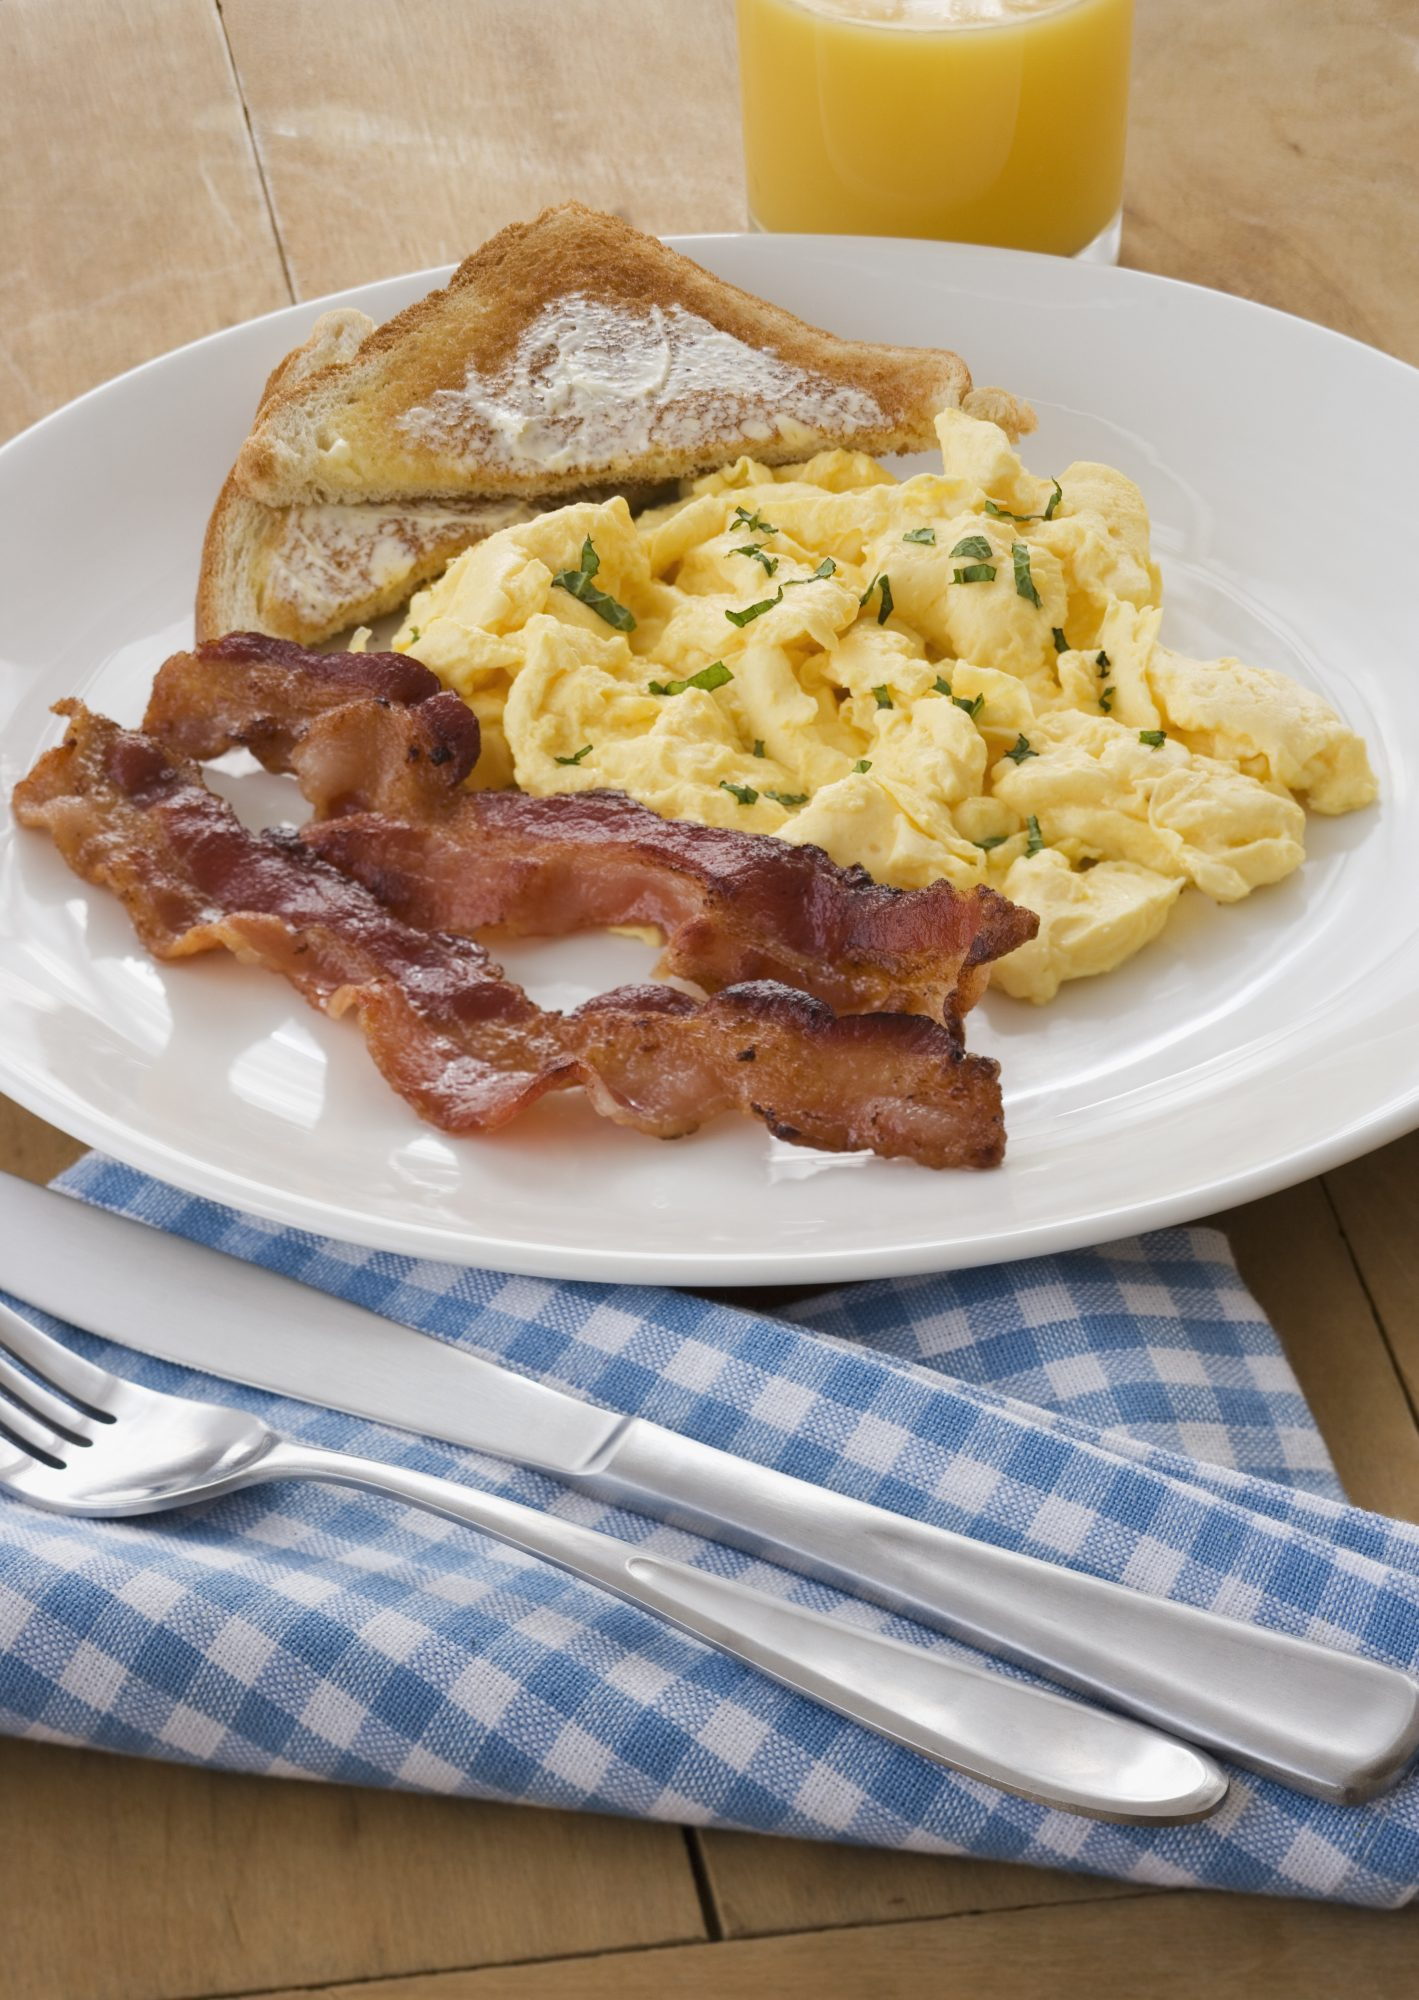 Scrambled Eggs, Bacon, and Toast for Breakfast